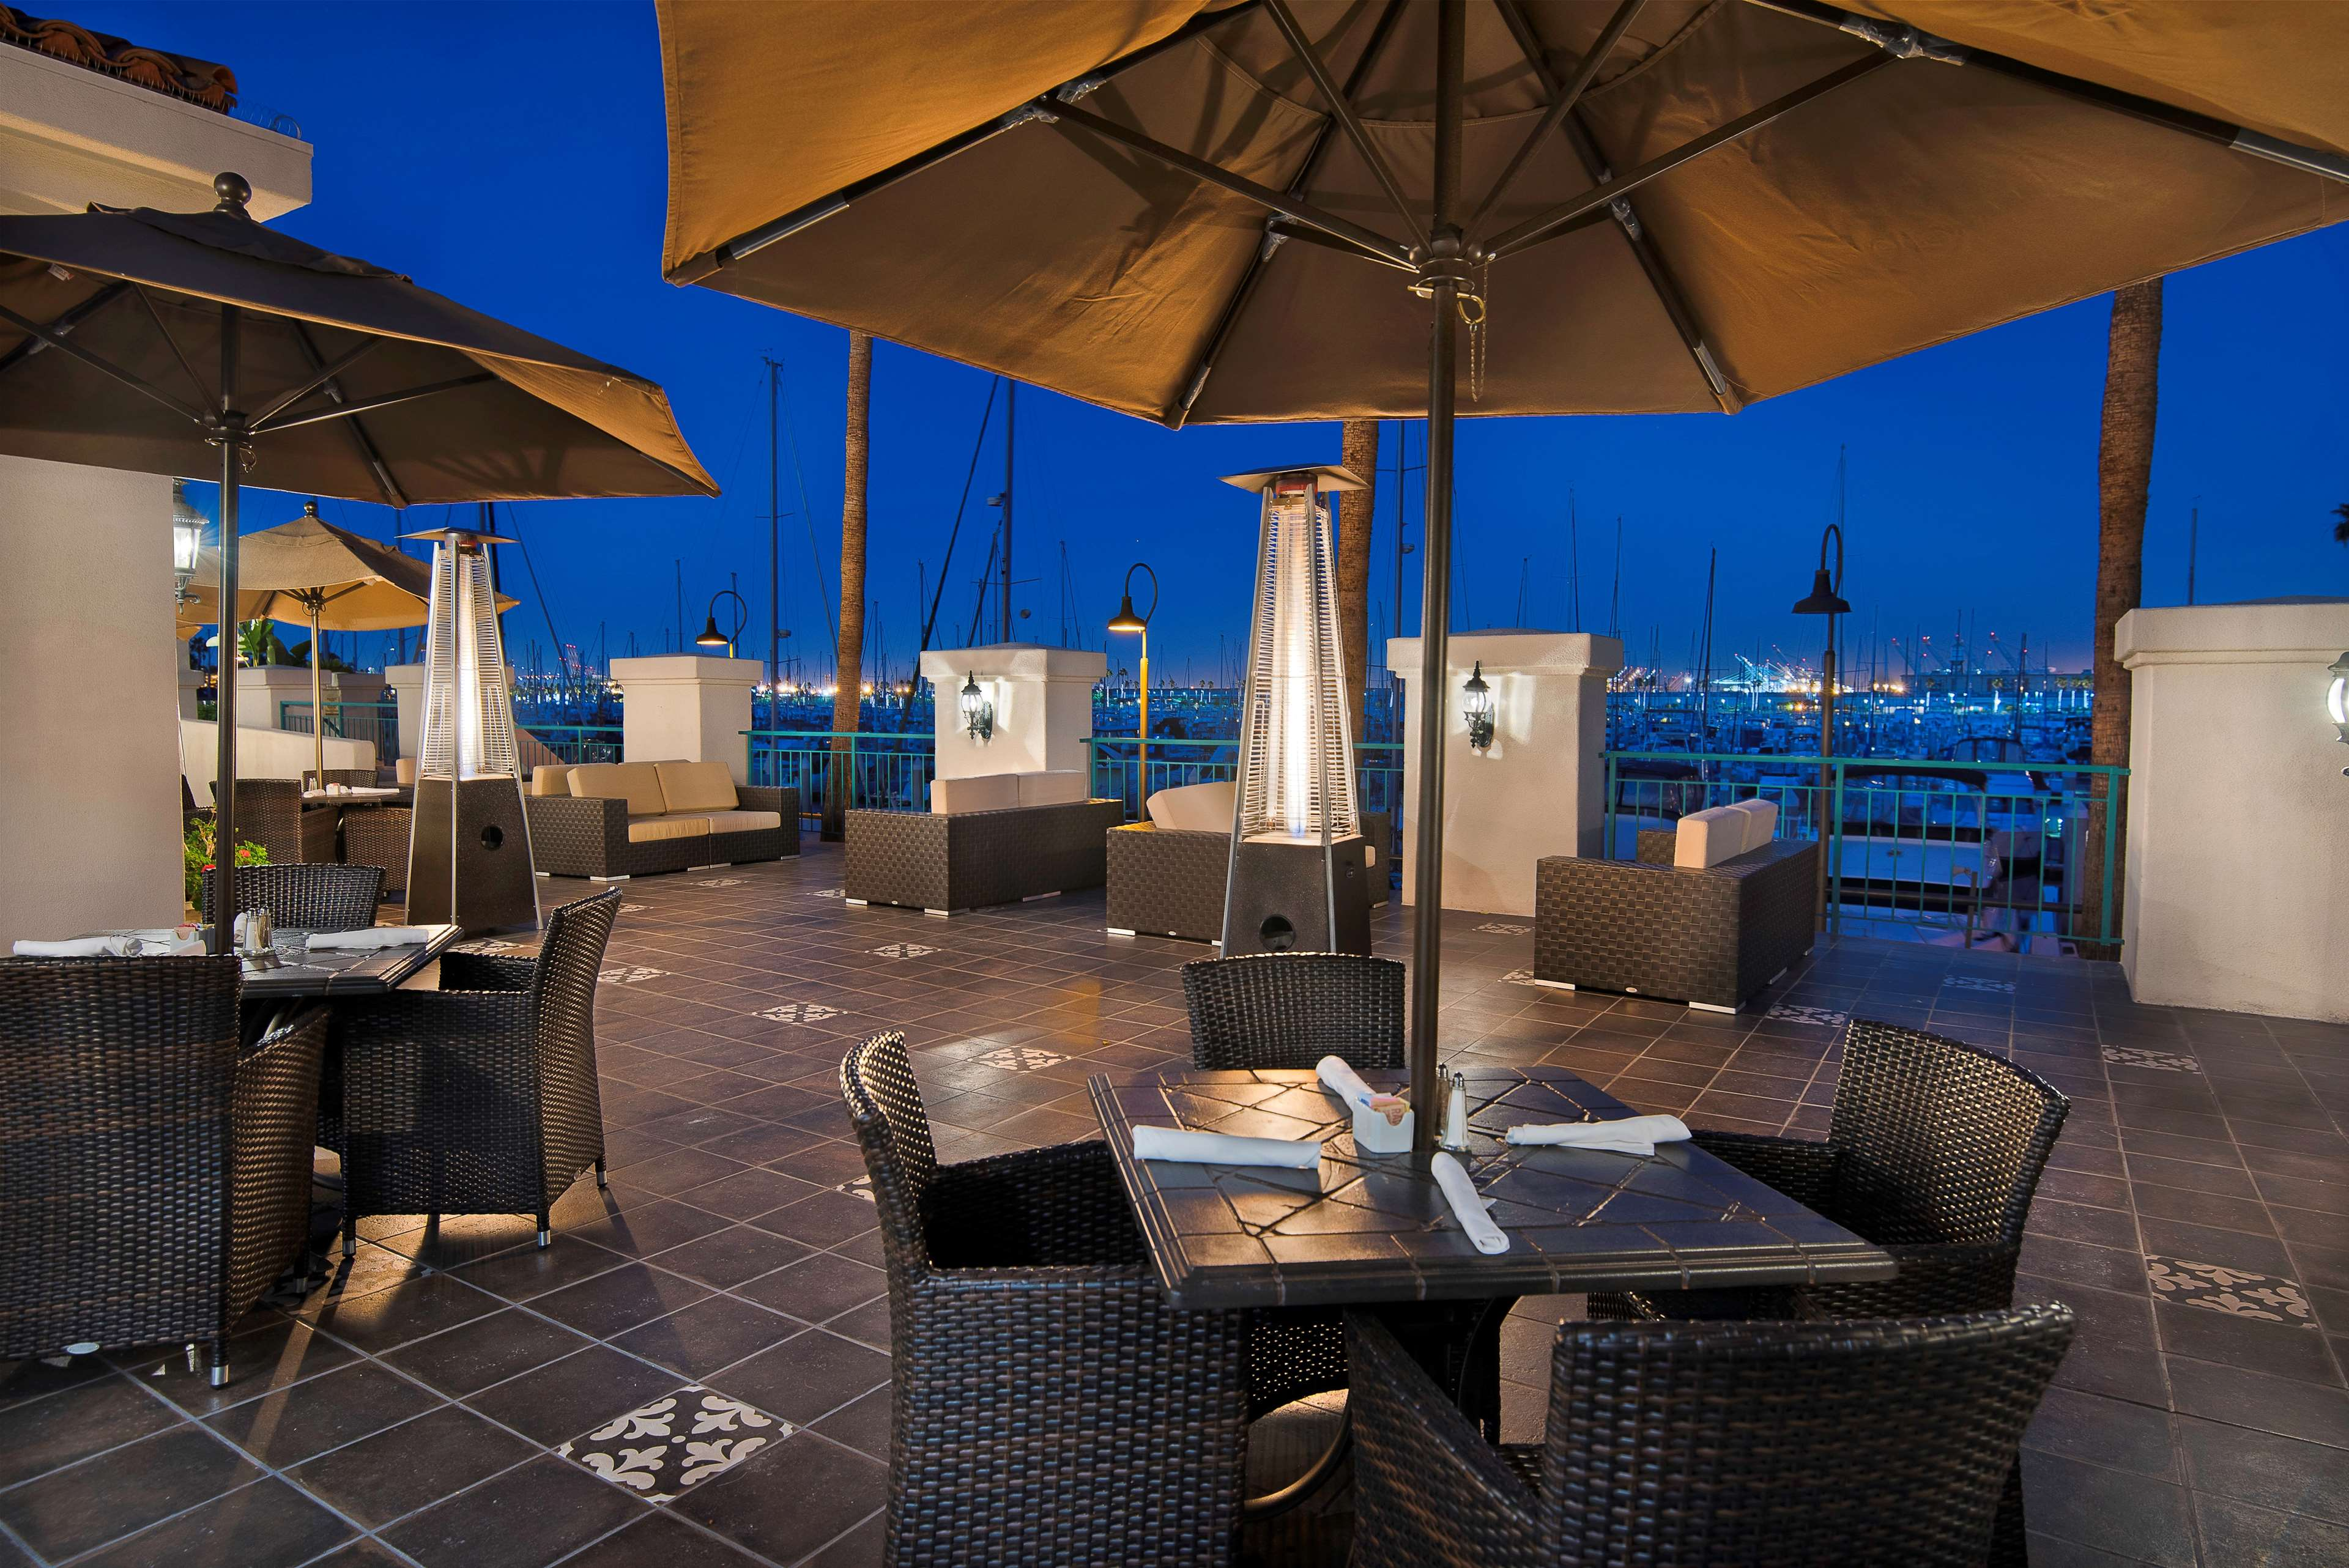 DoubleTree by Hilton Hotel San Pedro - Port of Los Angeles image 6